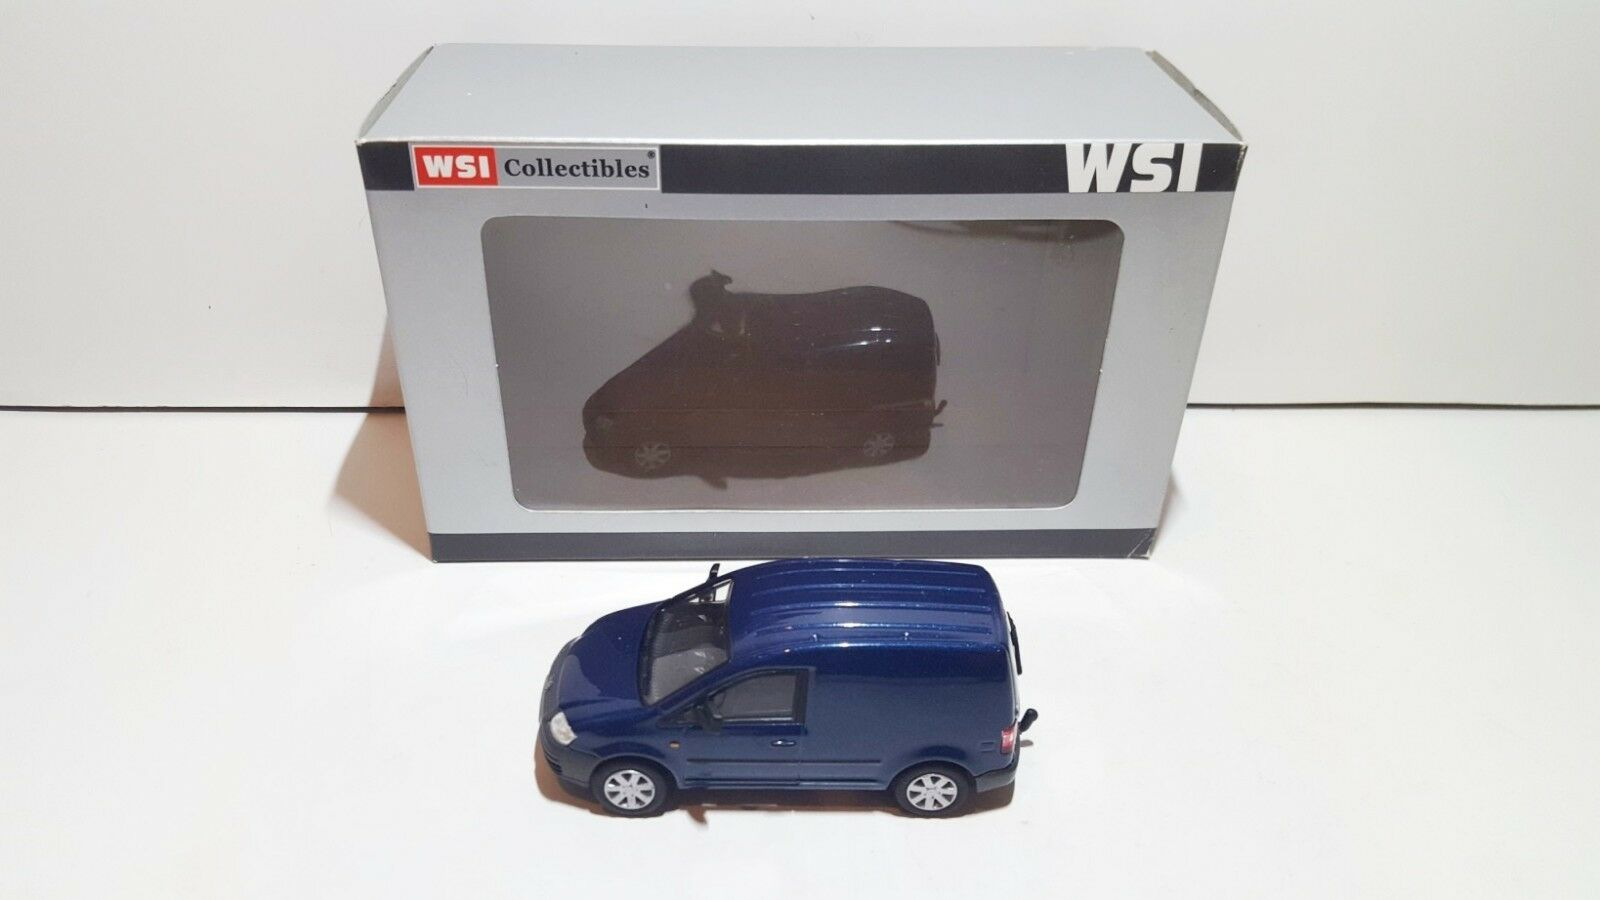 WSI Models PL-VW200-002 VW VW VW Volkswagen CADDY (blueW) blind van OVP MIB 1 50 SUPER 79afcf